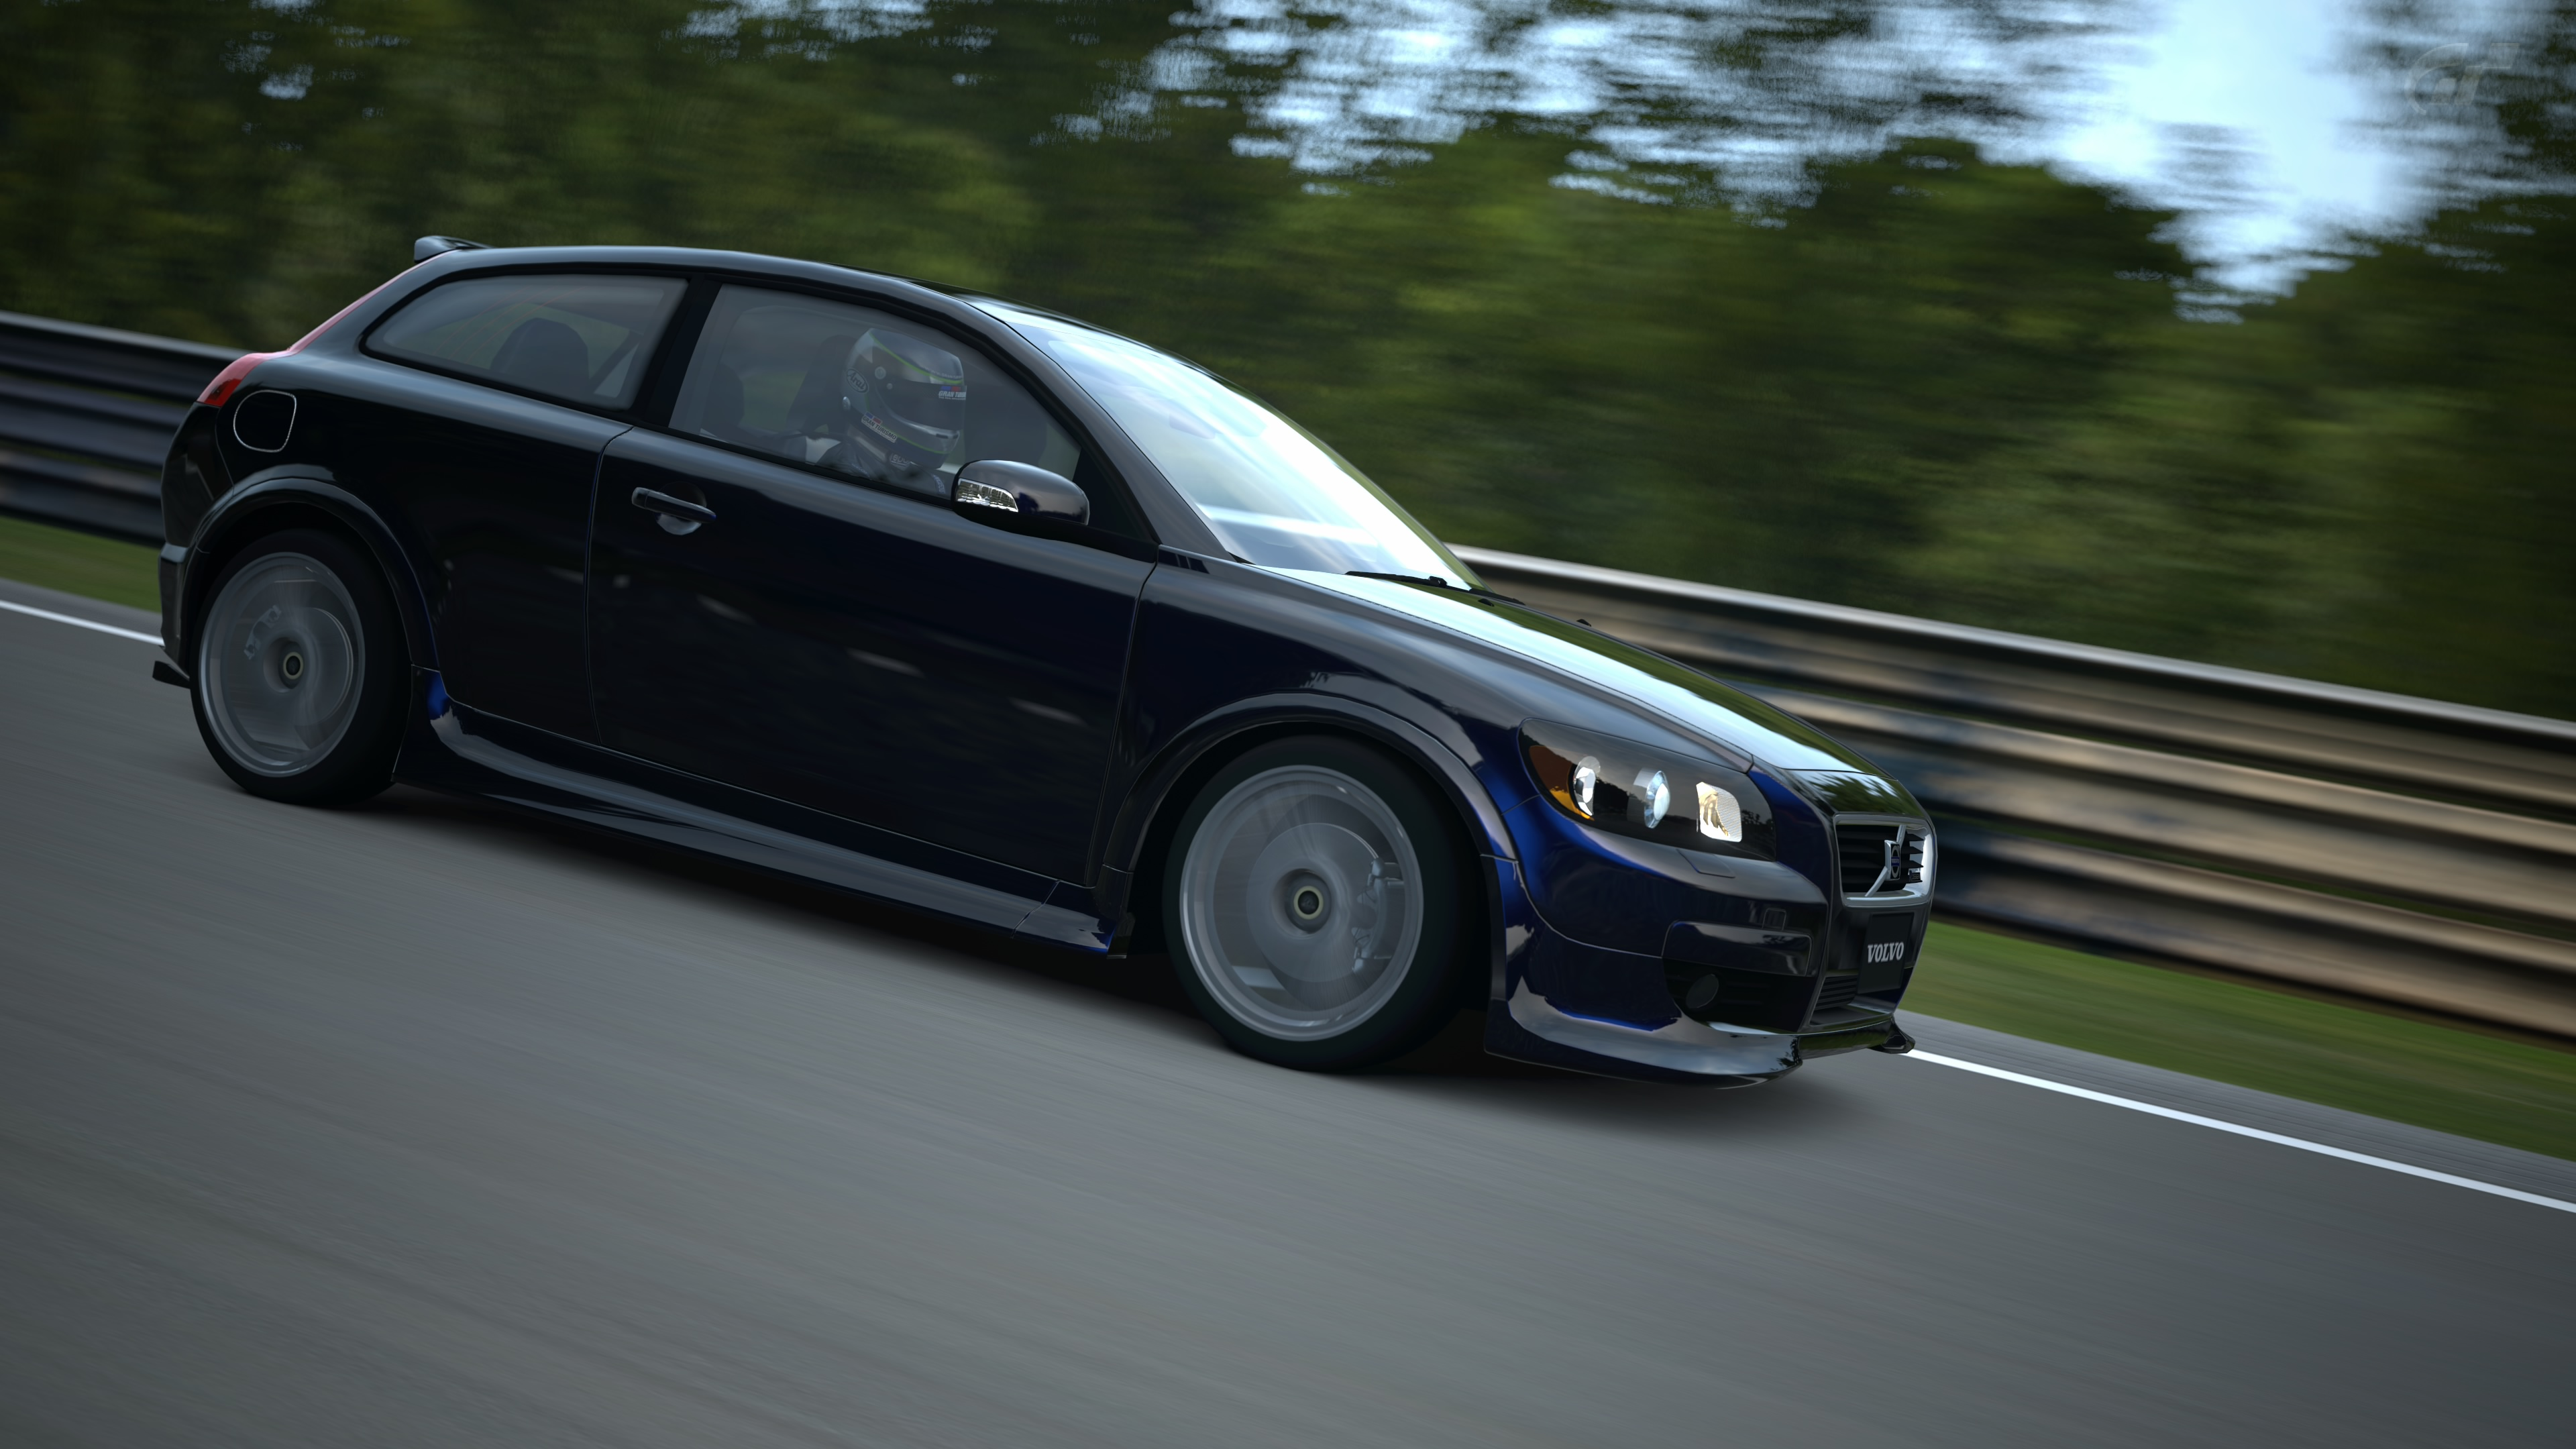 Volvo c30 r design 10 photo